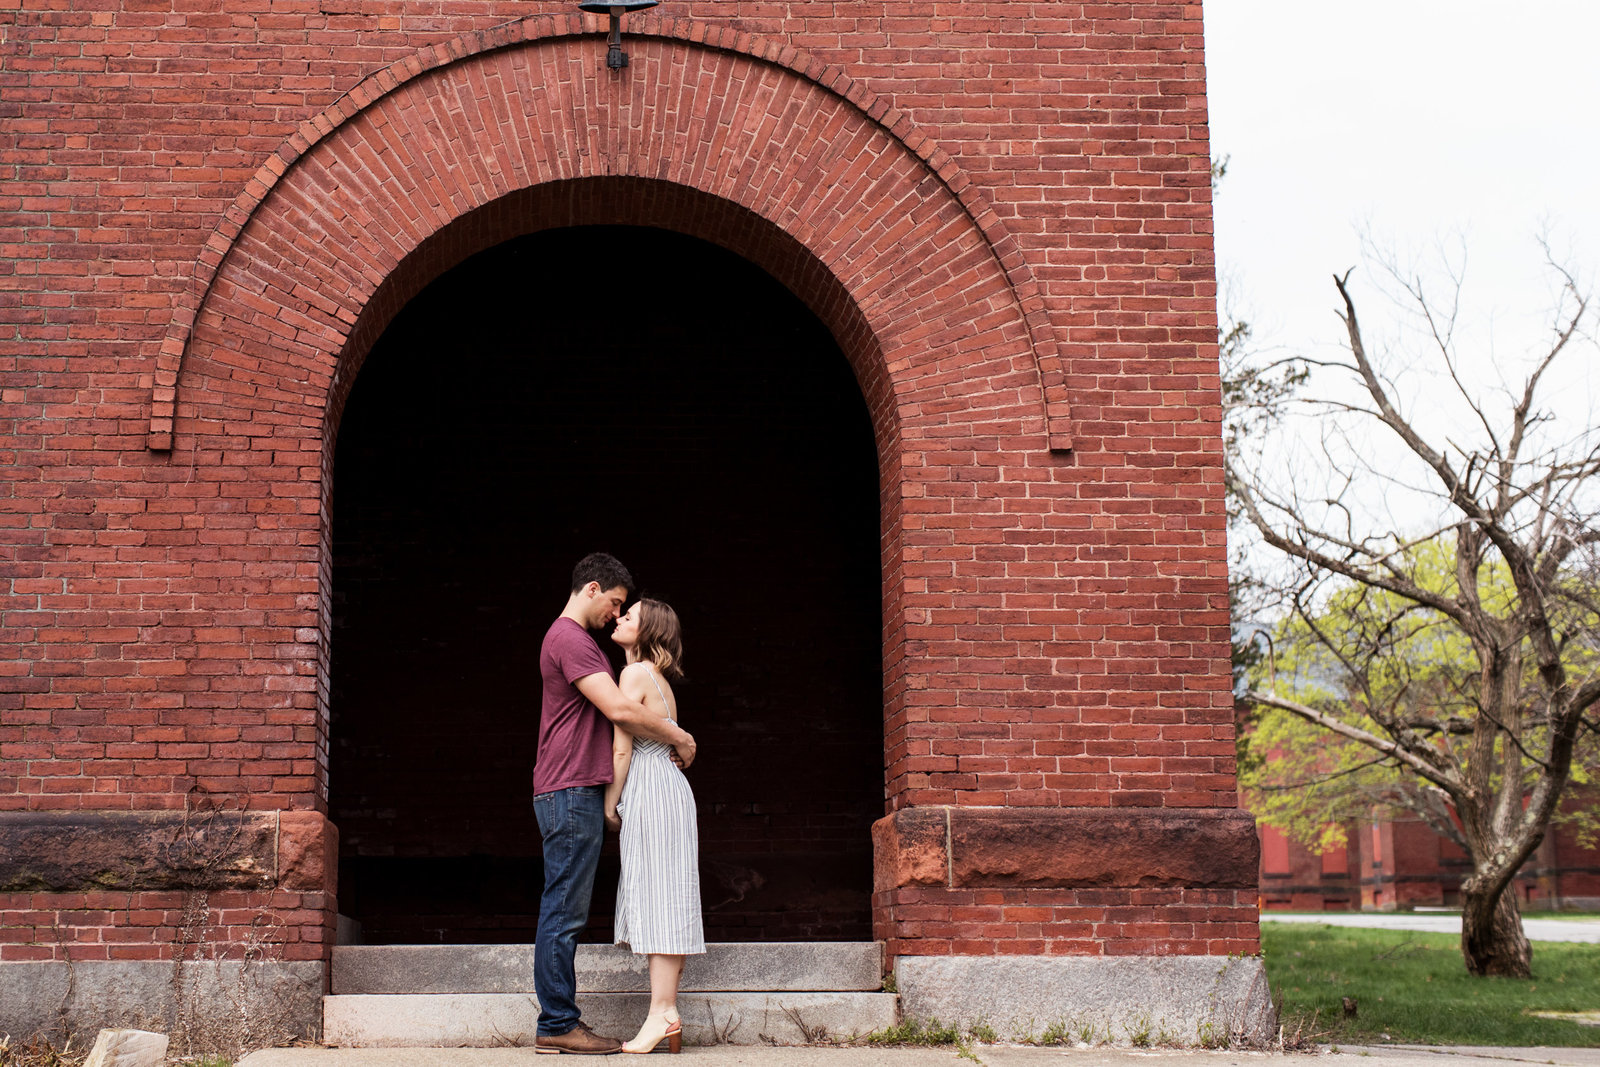 expectant couple stand under archway of brick building in medfield ma